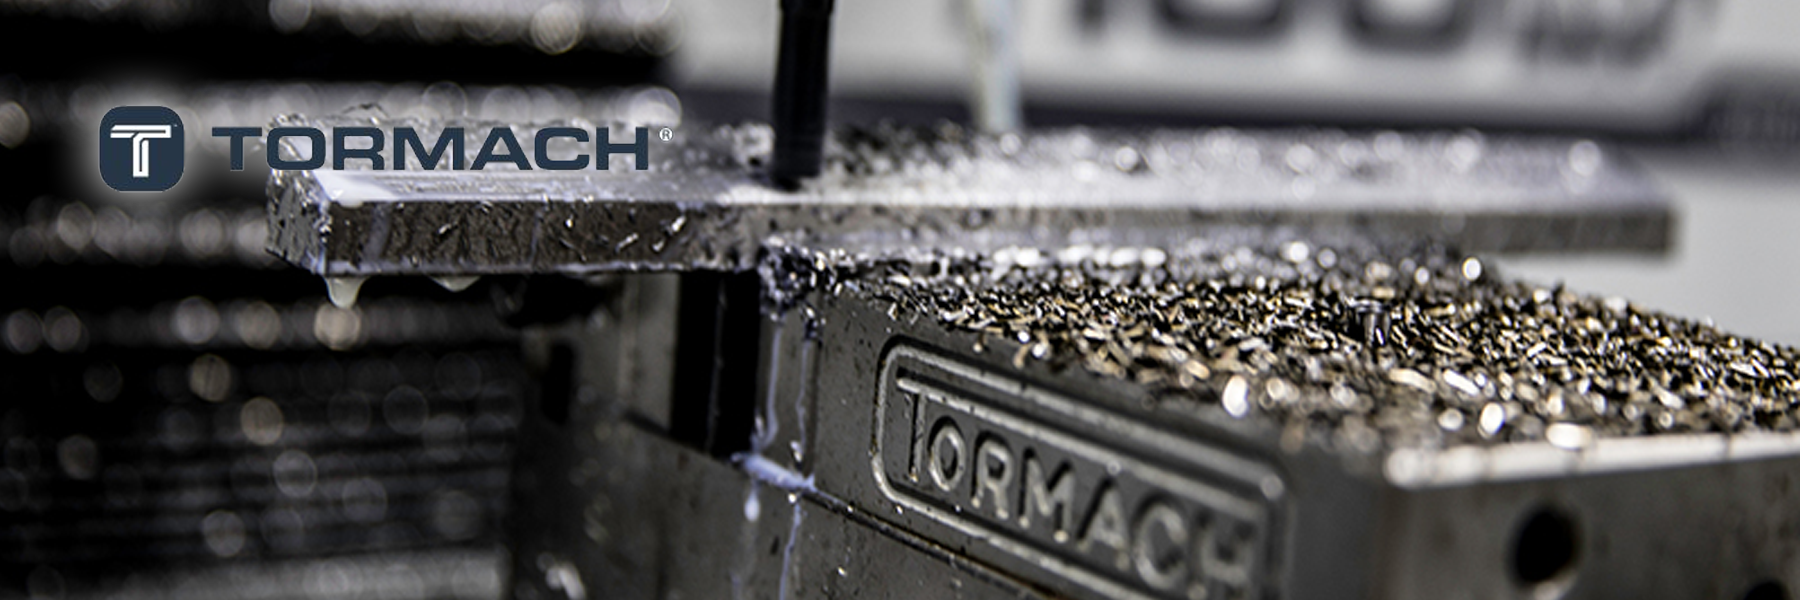 tormach-banner-industry-partner-page